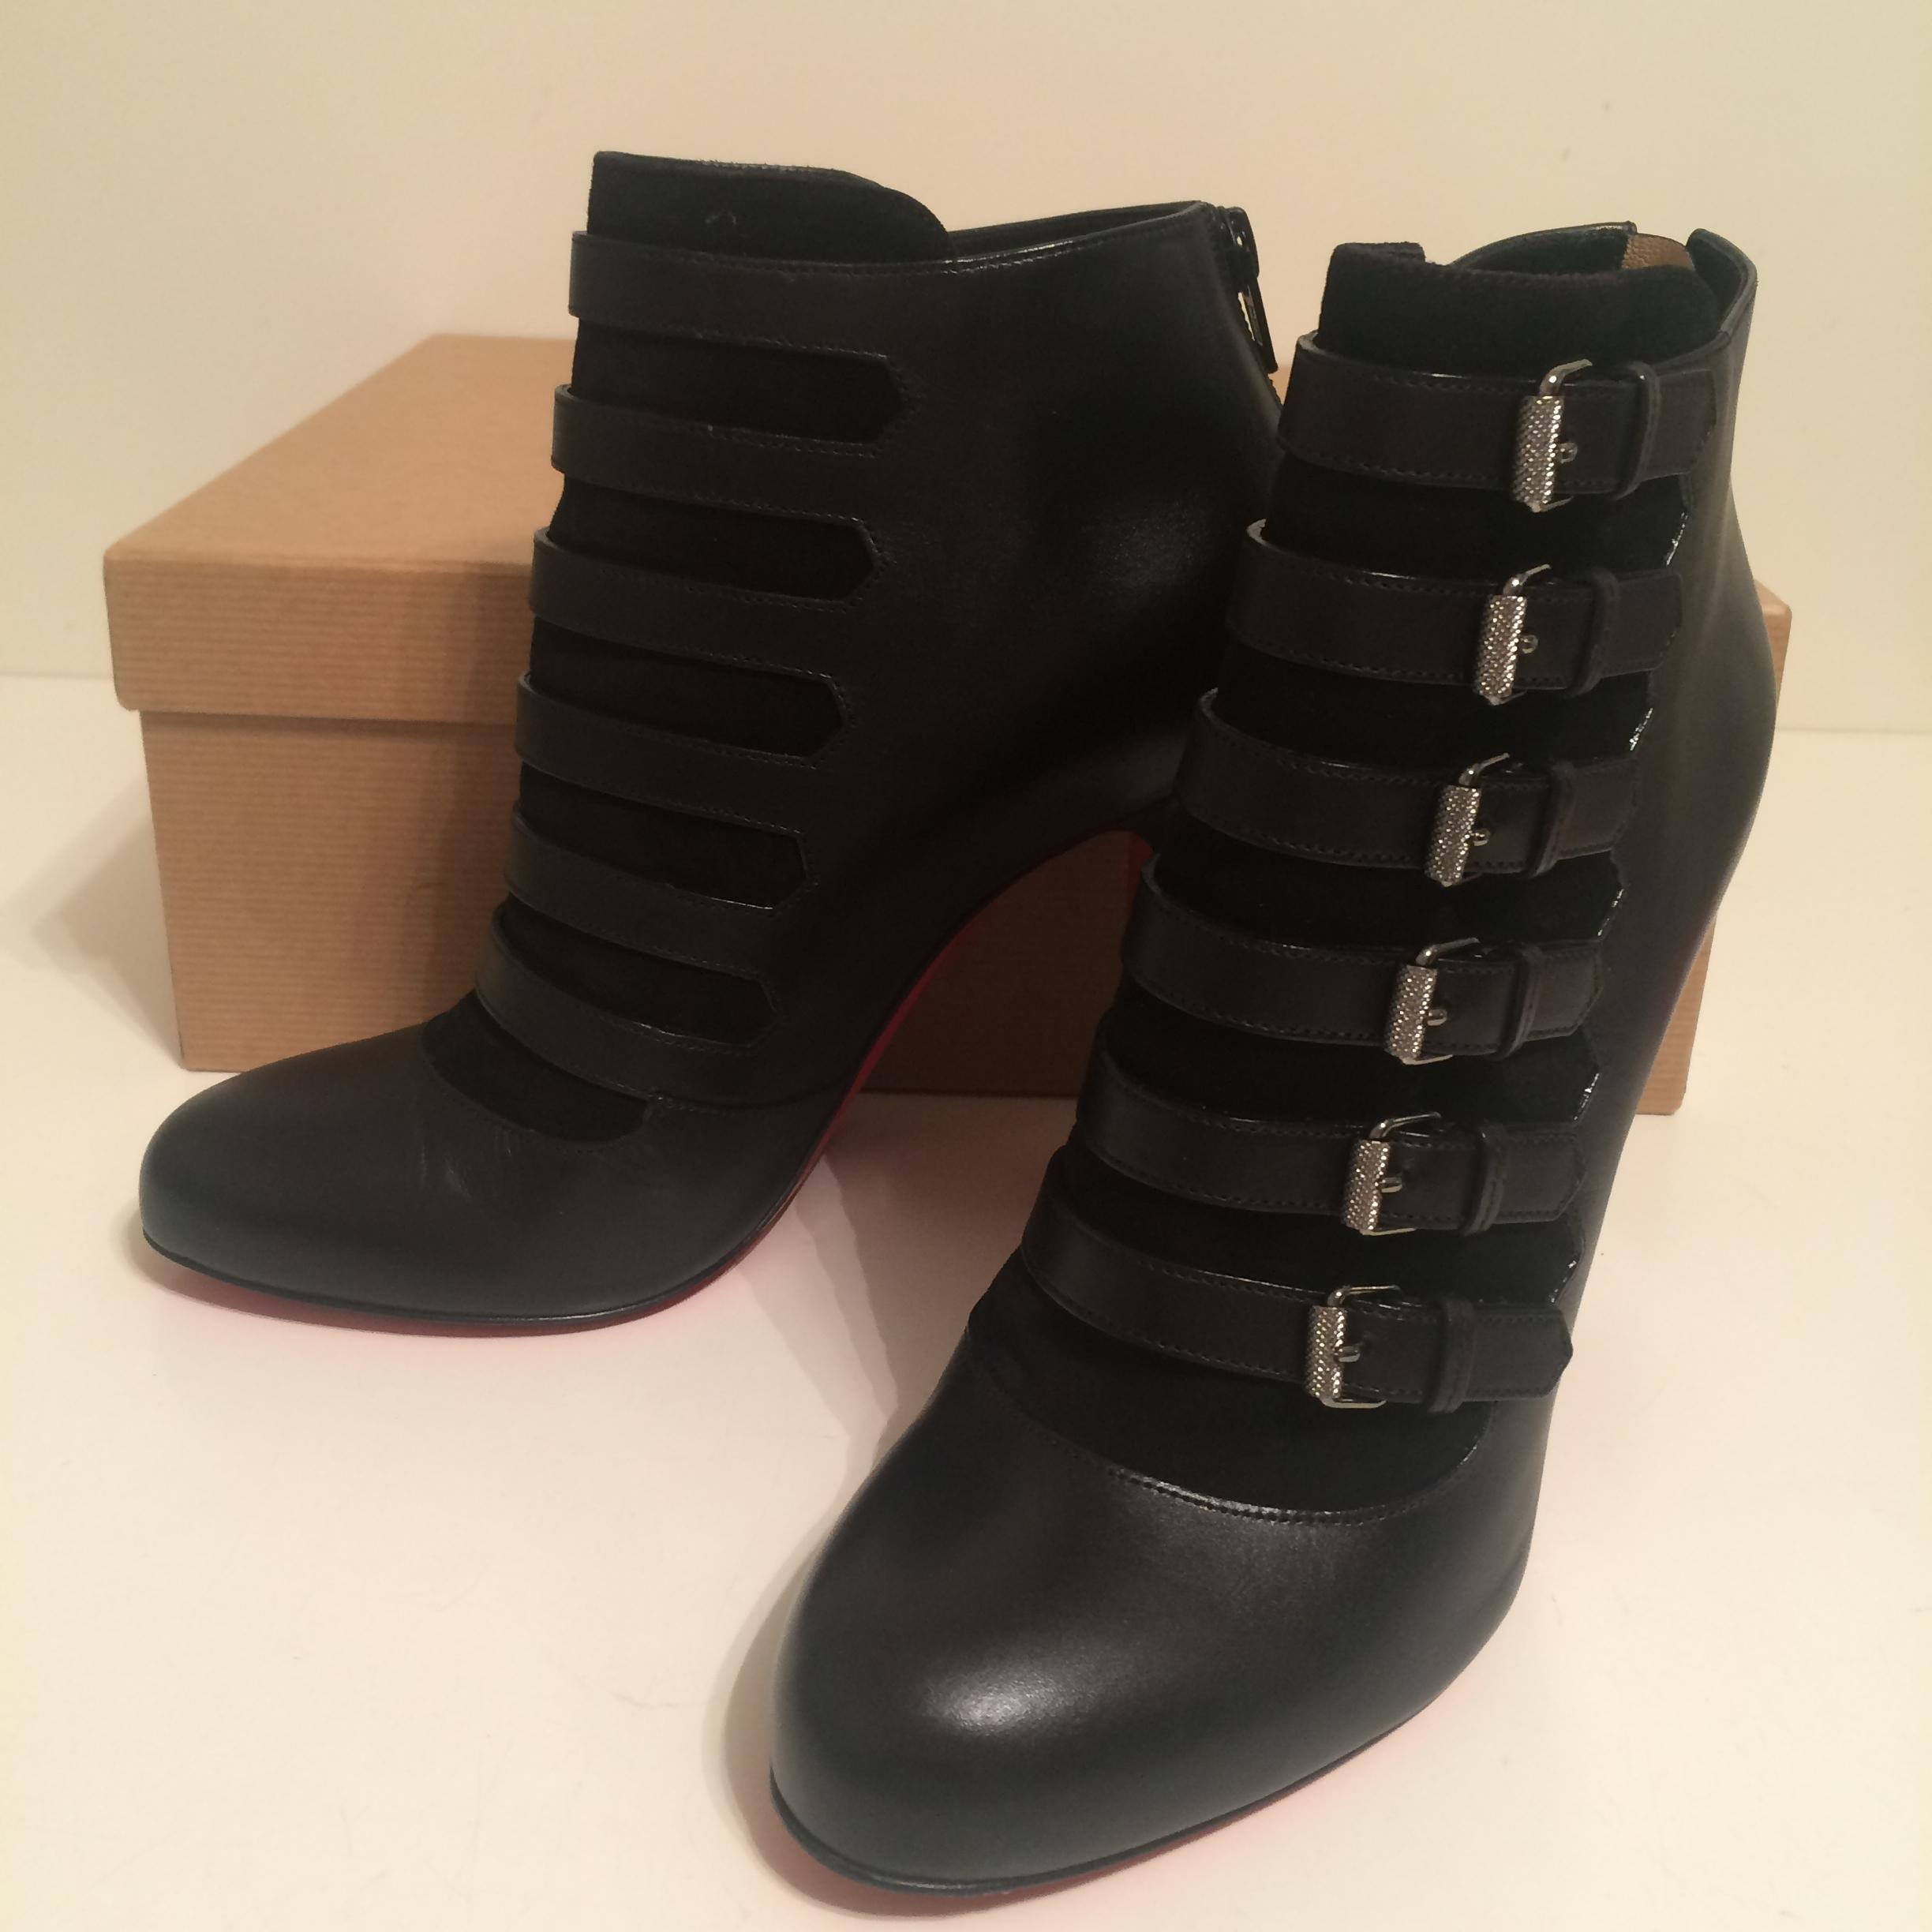 d4d226437720 ... Christian Louboutin Black Attroupee 100 Calfskin Leather Ankle Ankle  Ankle Booties Eu 39 Pumps Size US ...